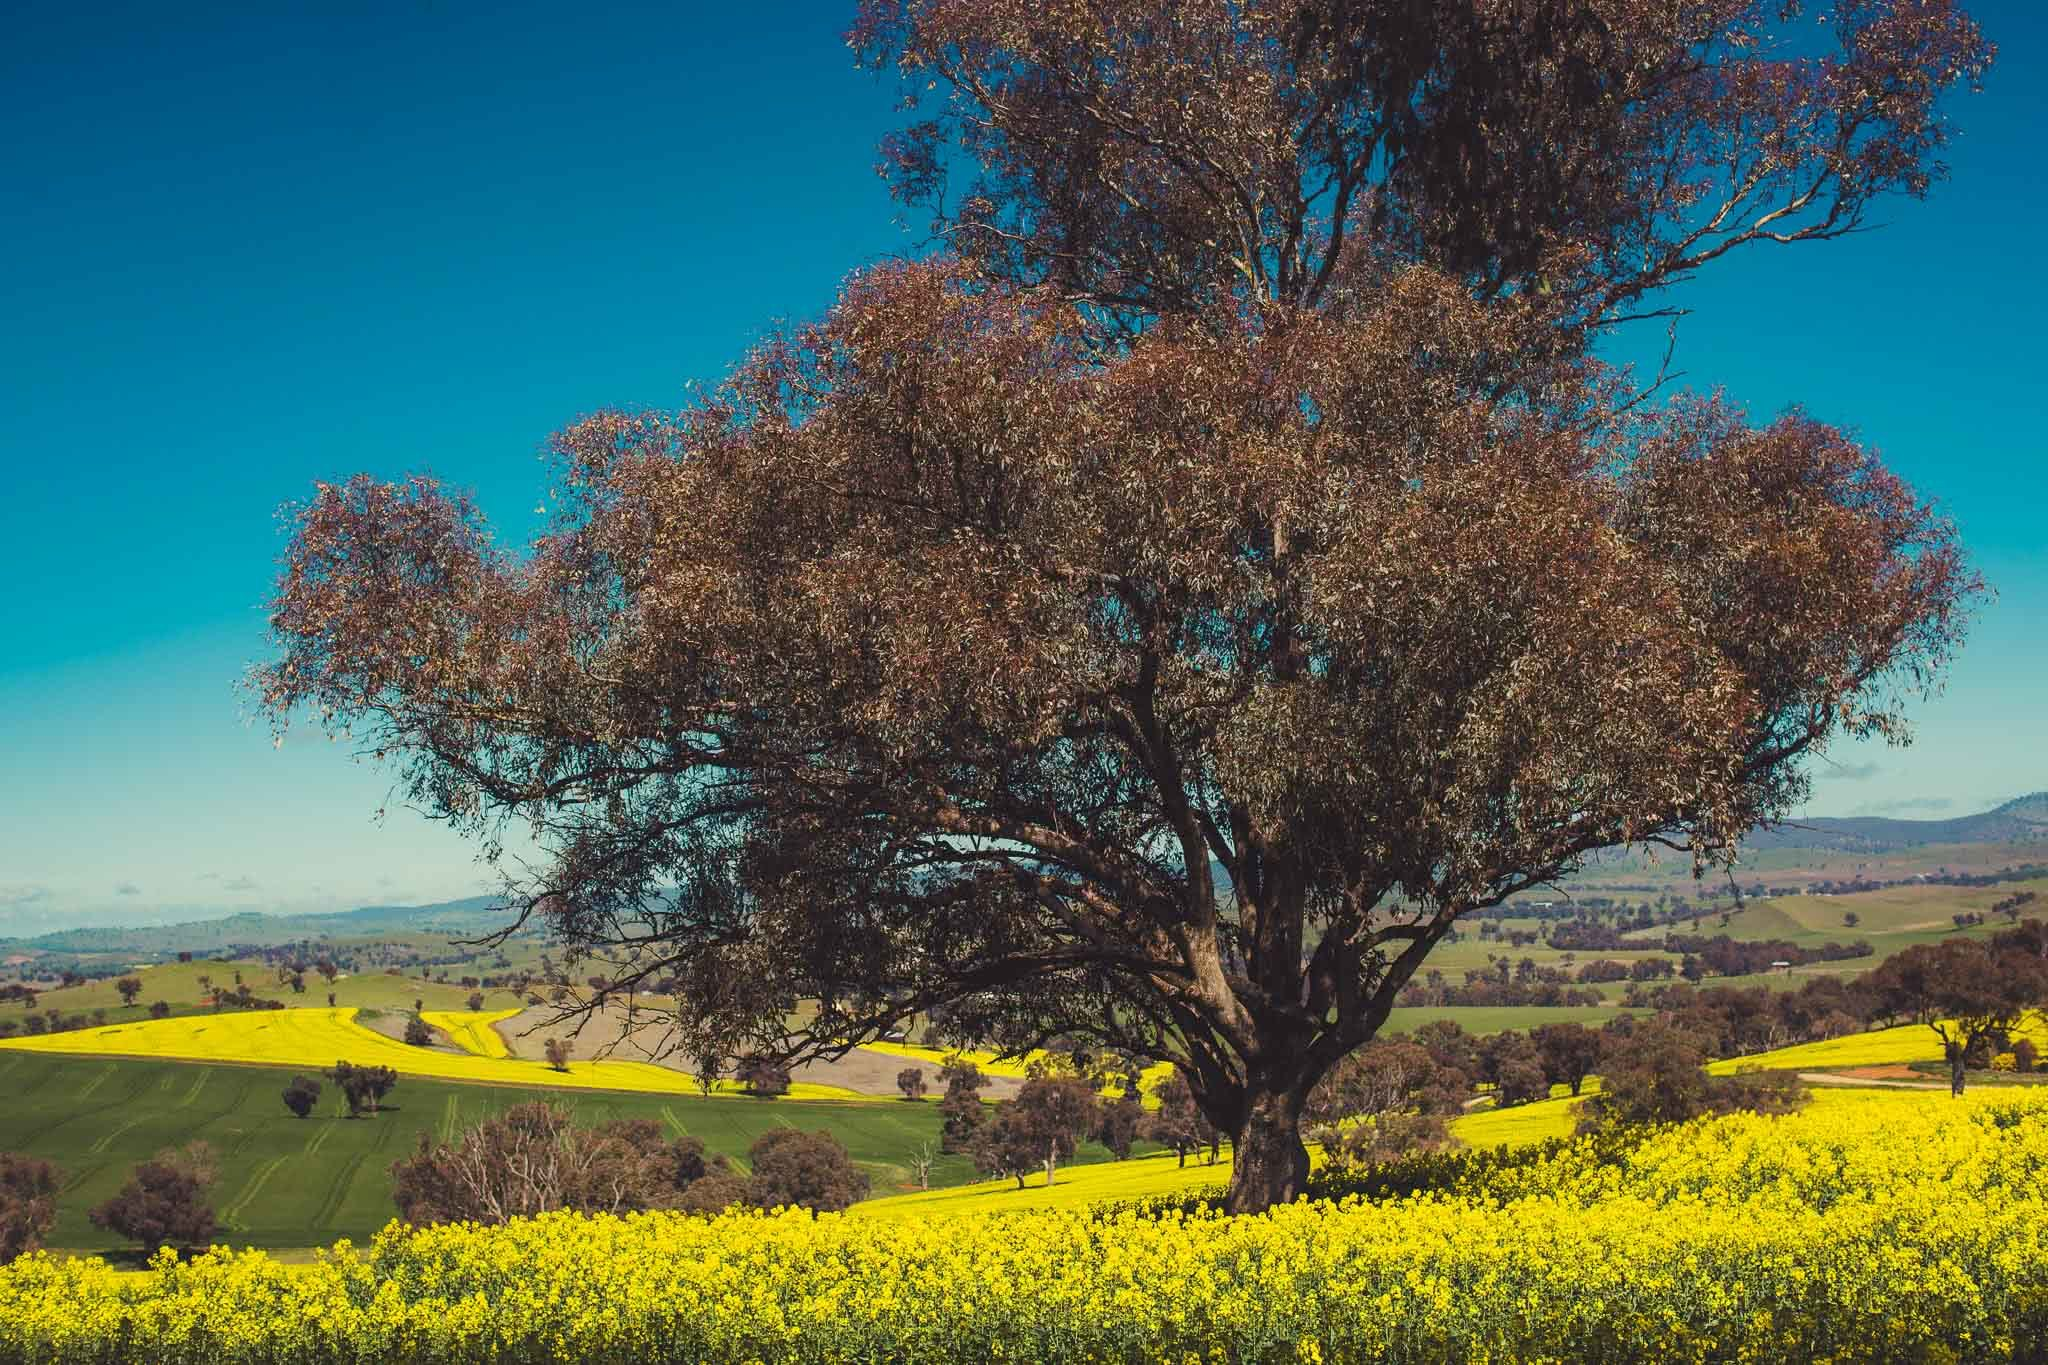 Cootamundra's Canola Fields & The Sugar Pine Forest (NSW), Alfonso Calero, Riverina, NSW, canola flowers, tree